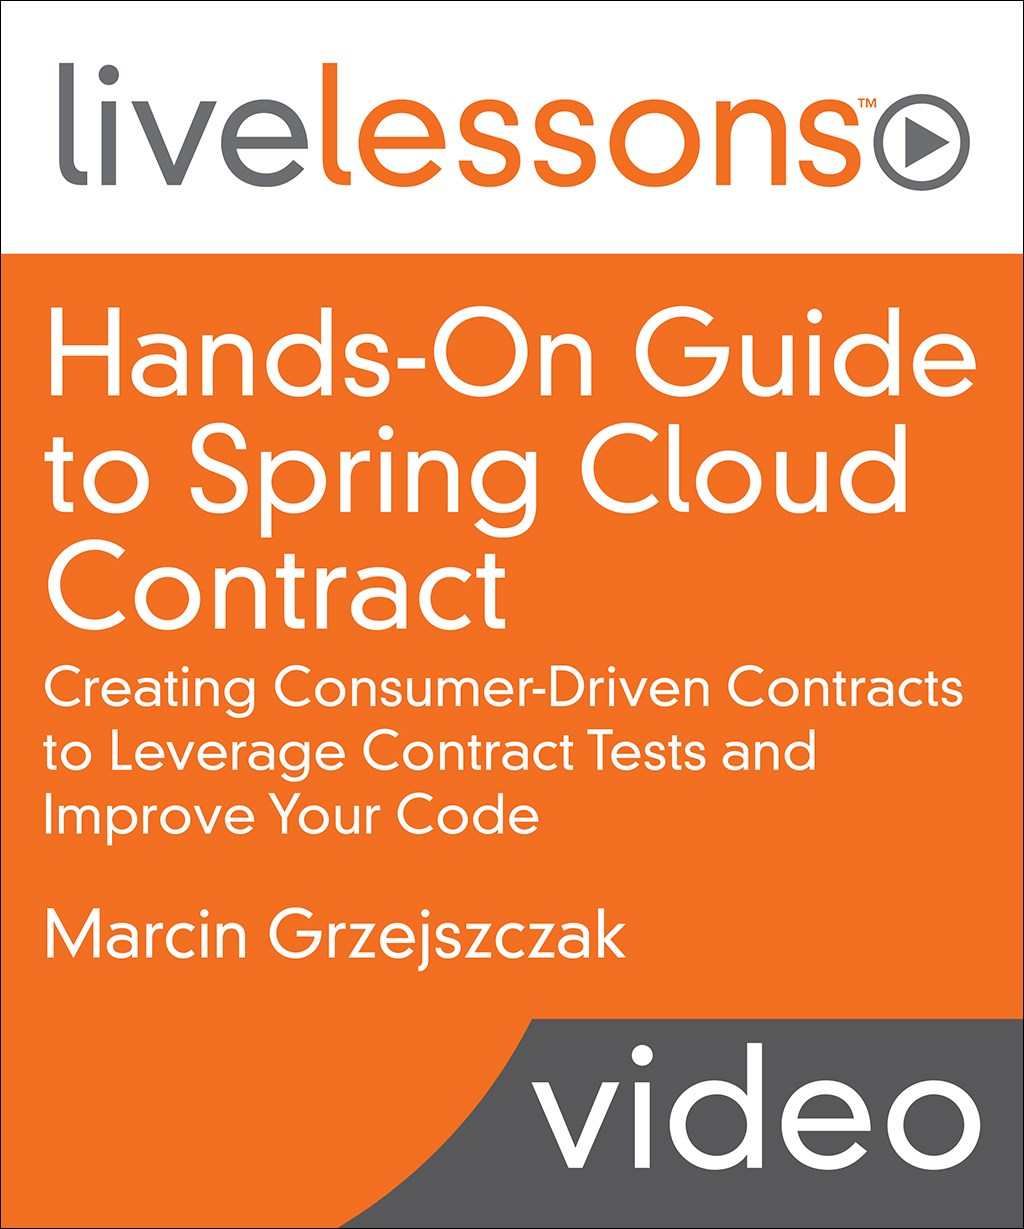 Hands-On Guide to Spring Cloud Contract LiveLessons